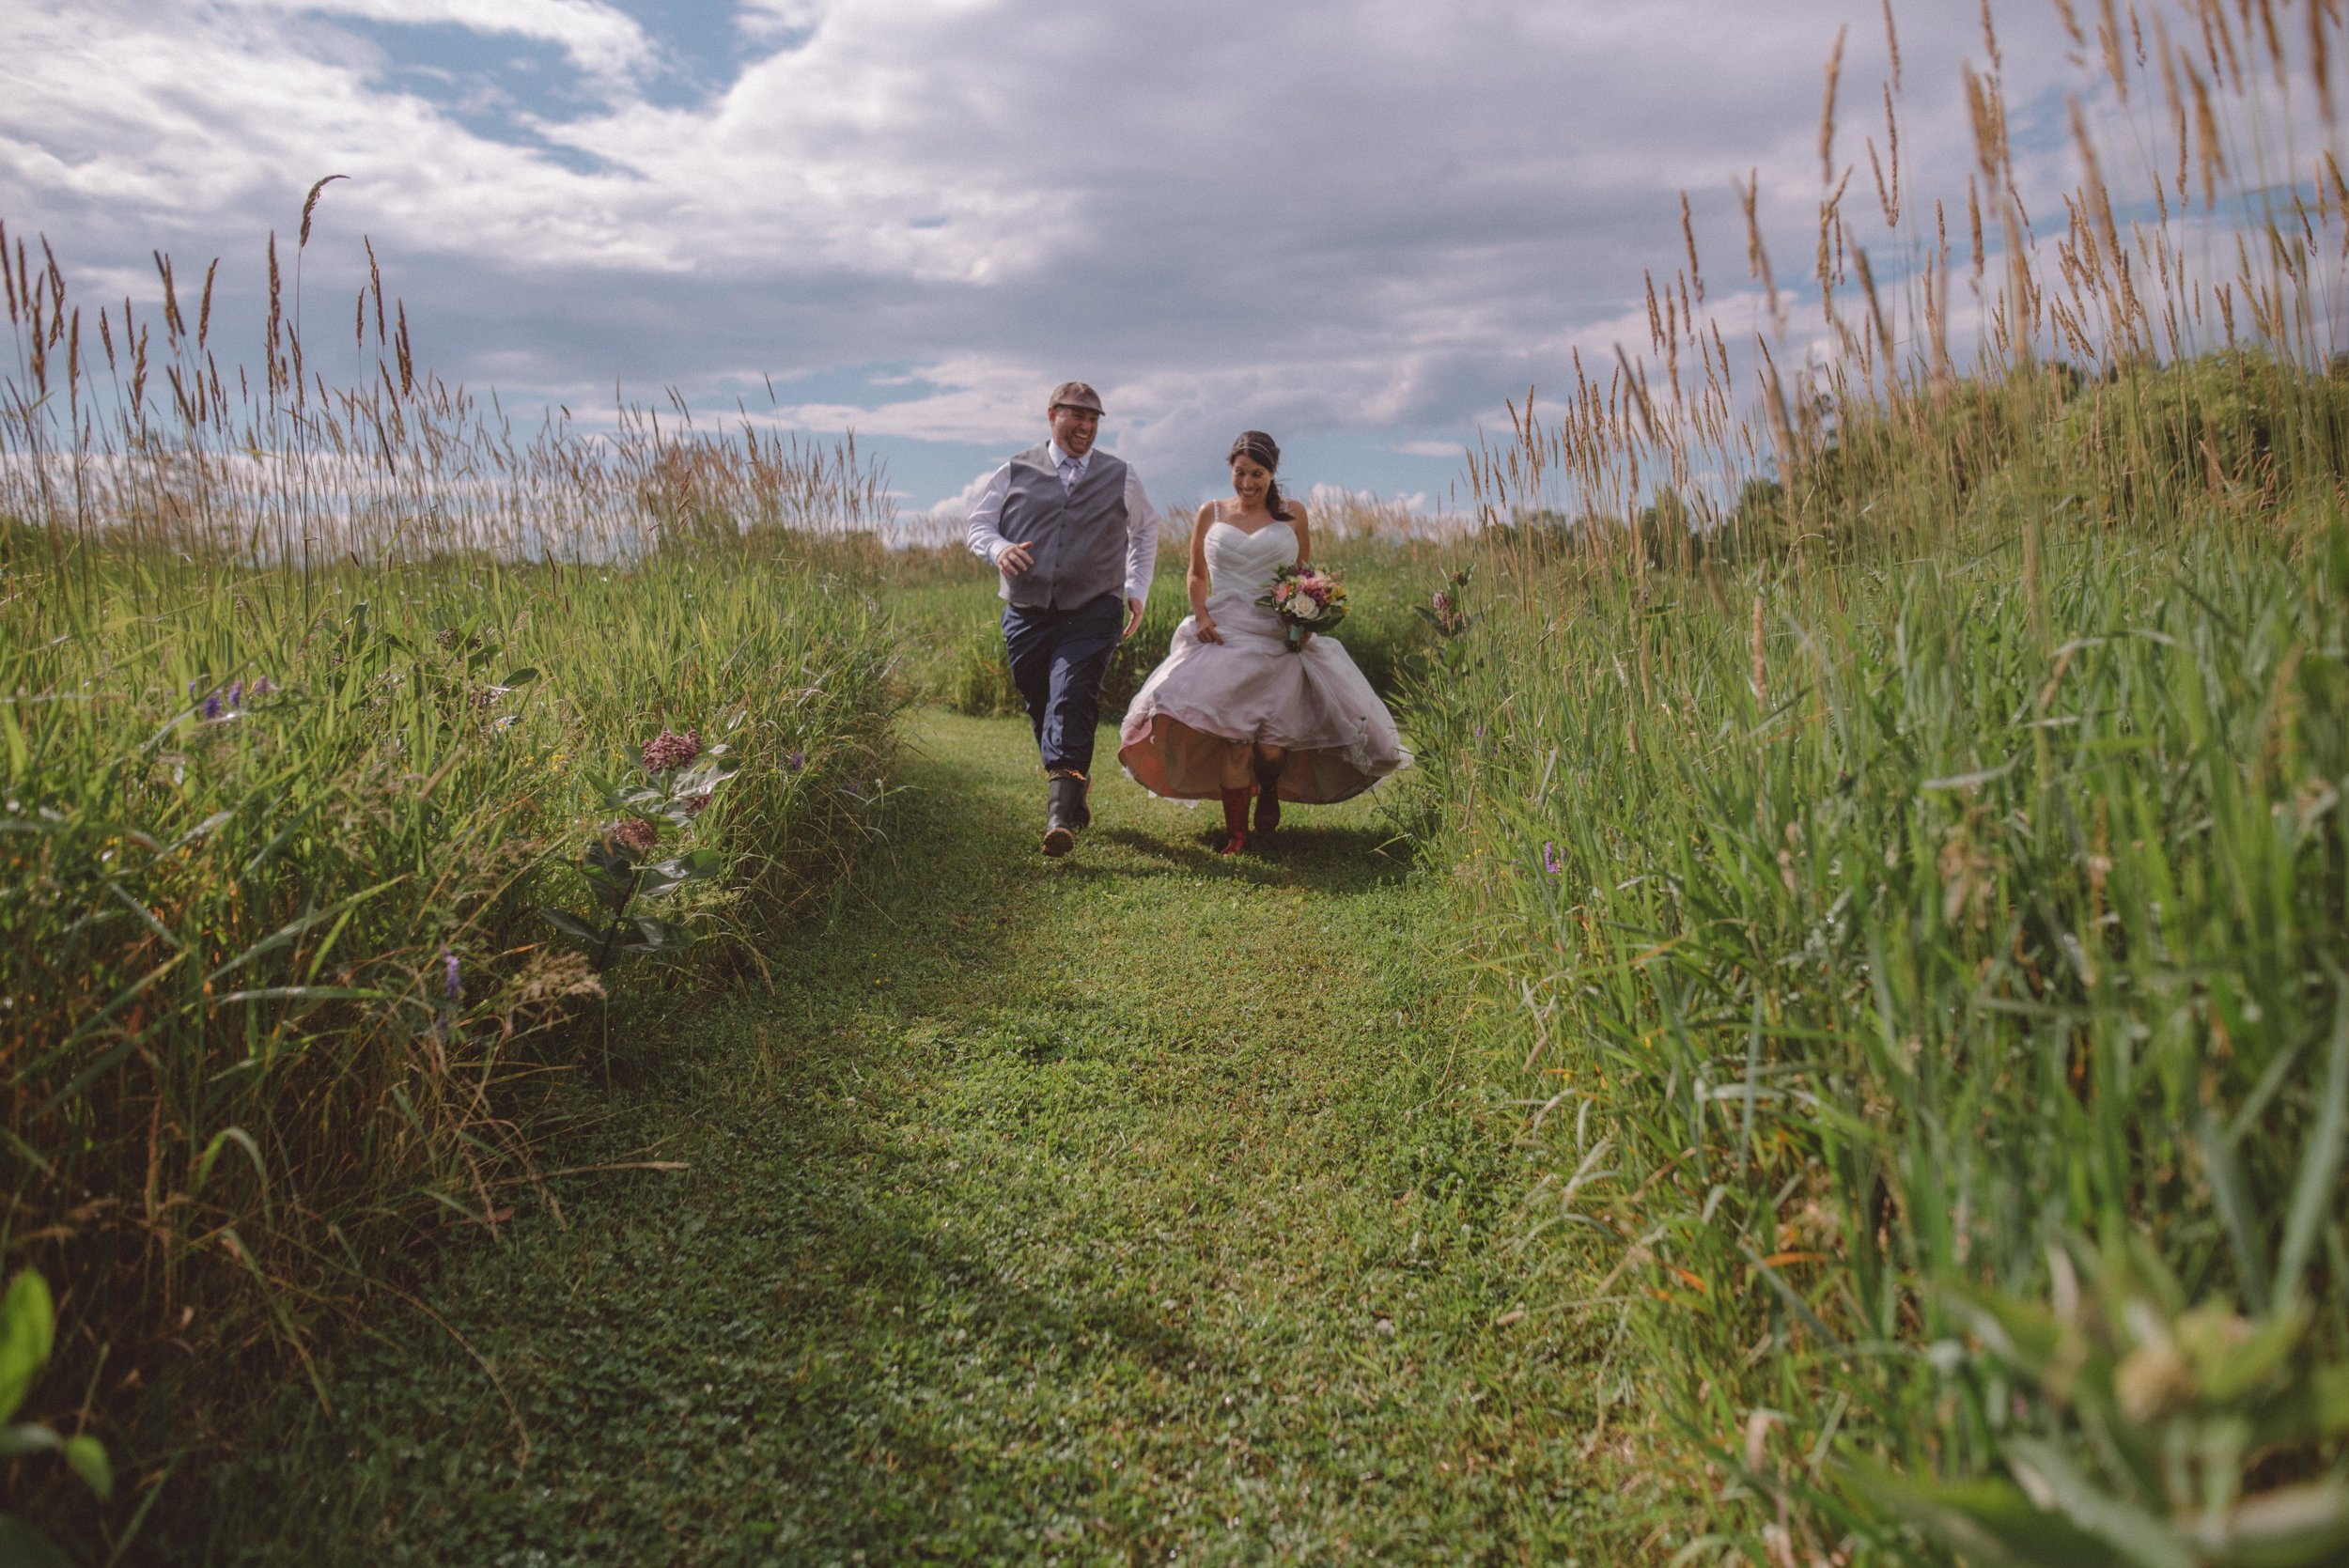 ottawa_wedding_photographer_mariage_gatineau_photographe-51.jpg